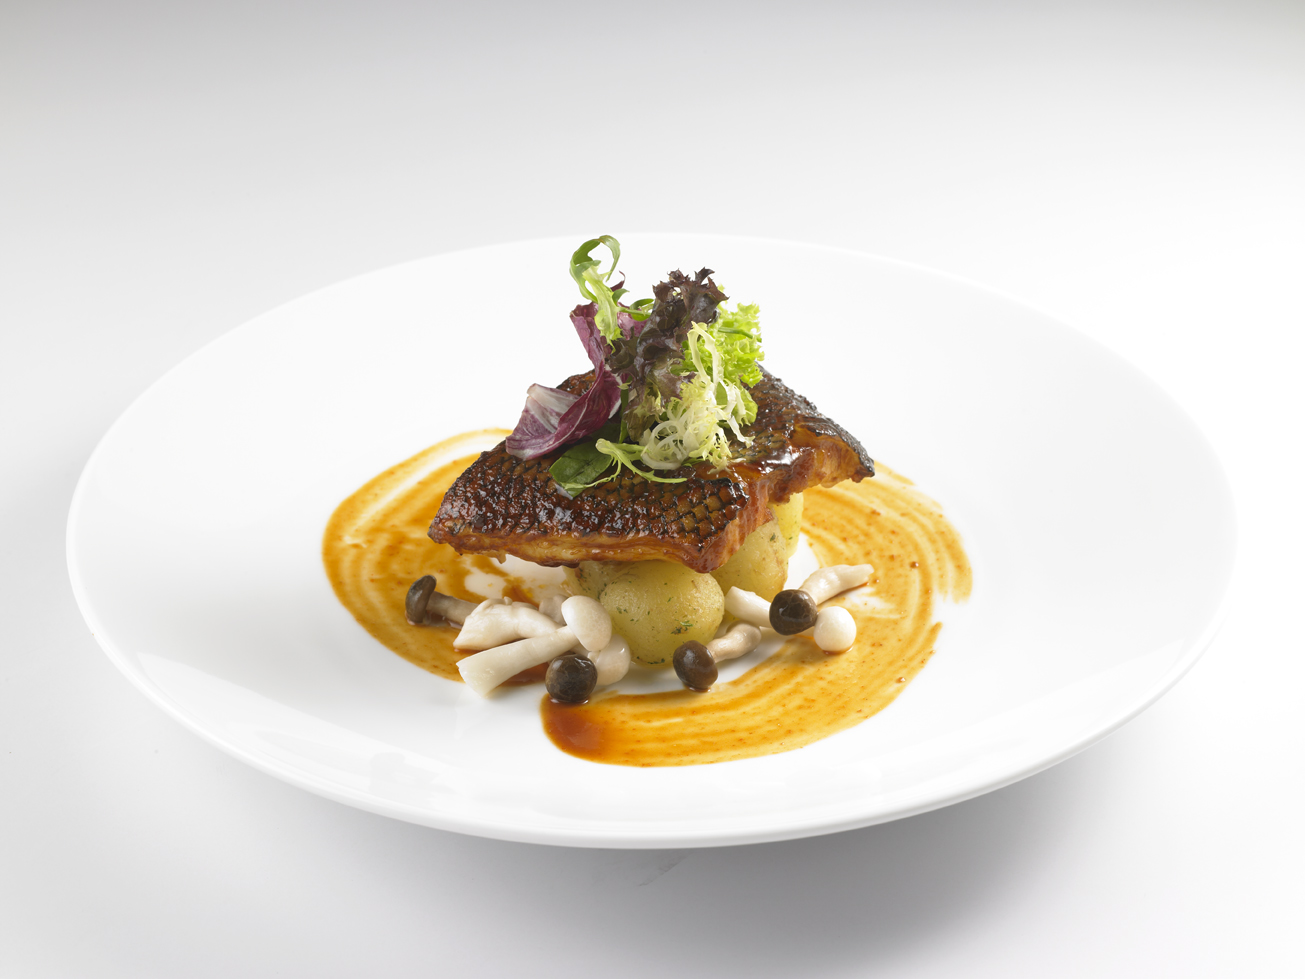 Enjoy the merriment of western asian palates with earle for One fish two fish menu